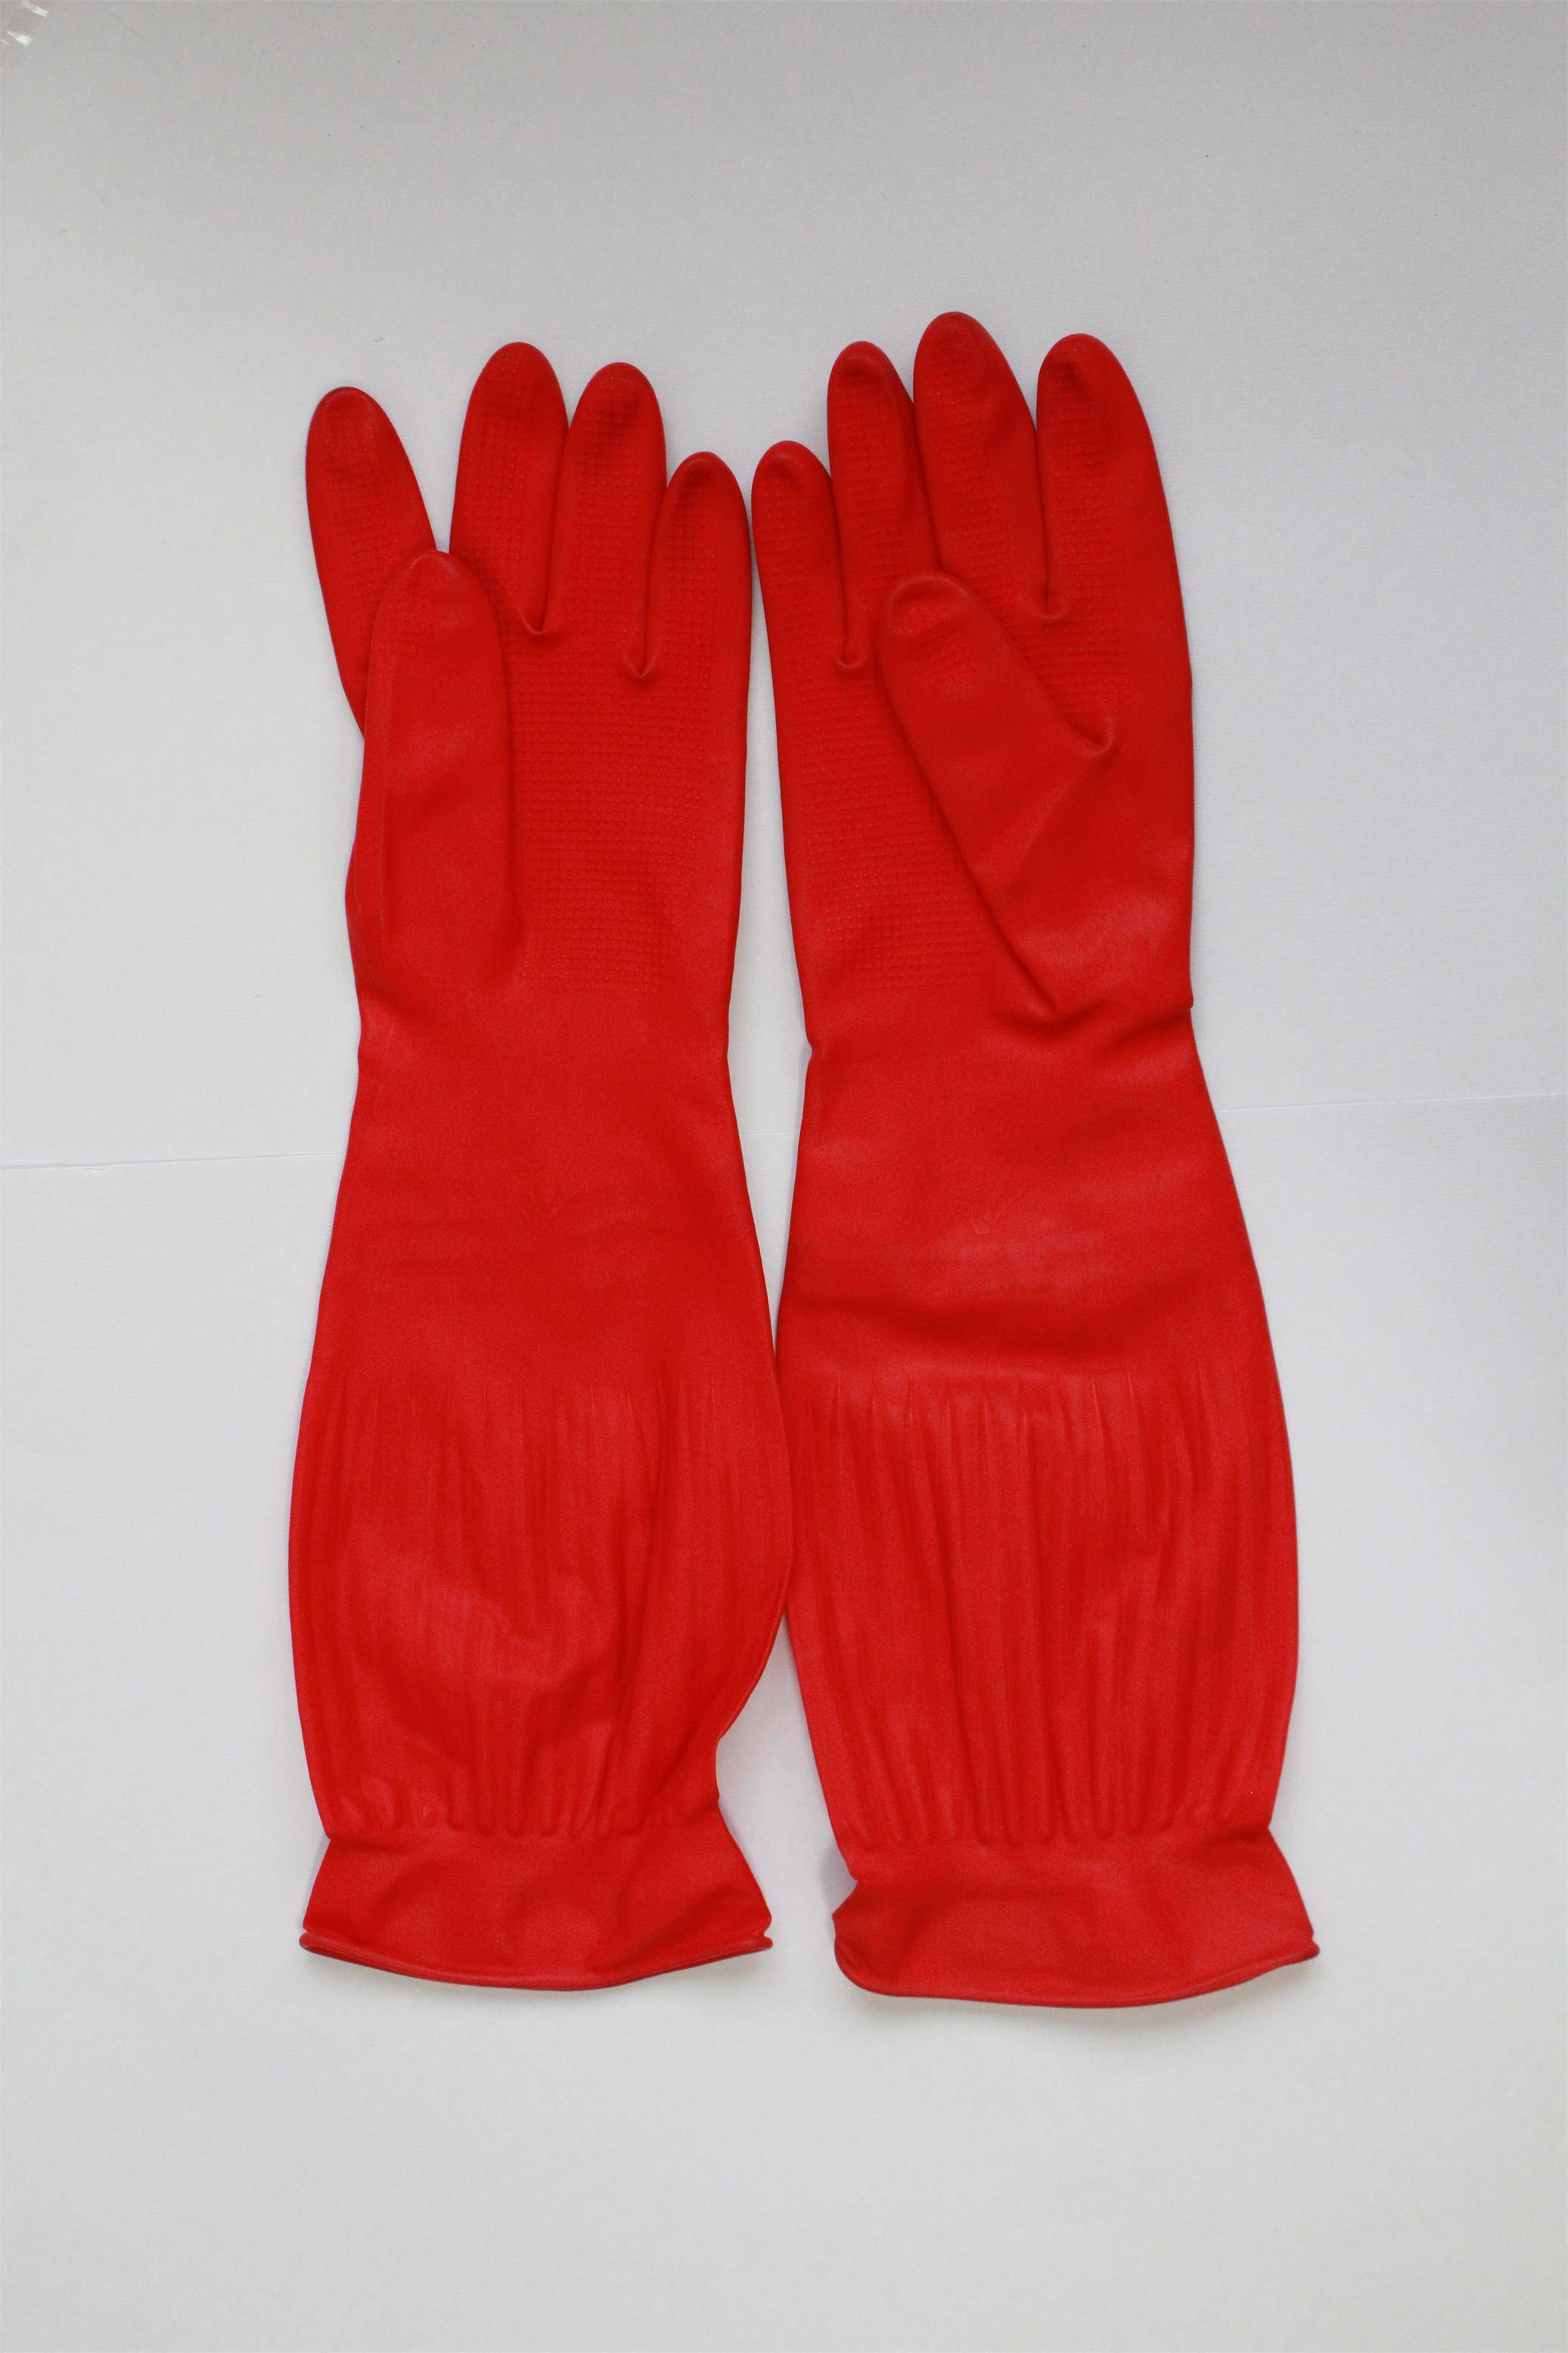 RHH-4 Latex household gloves